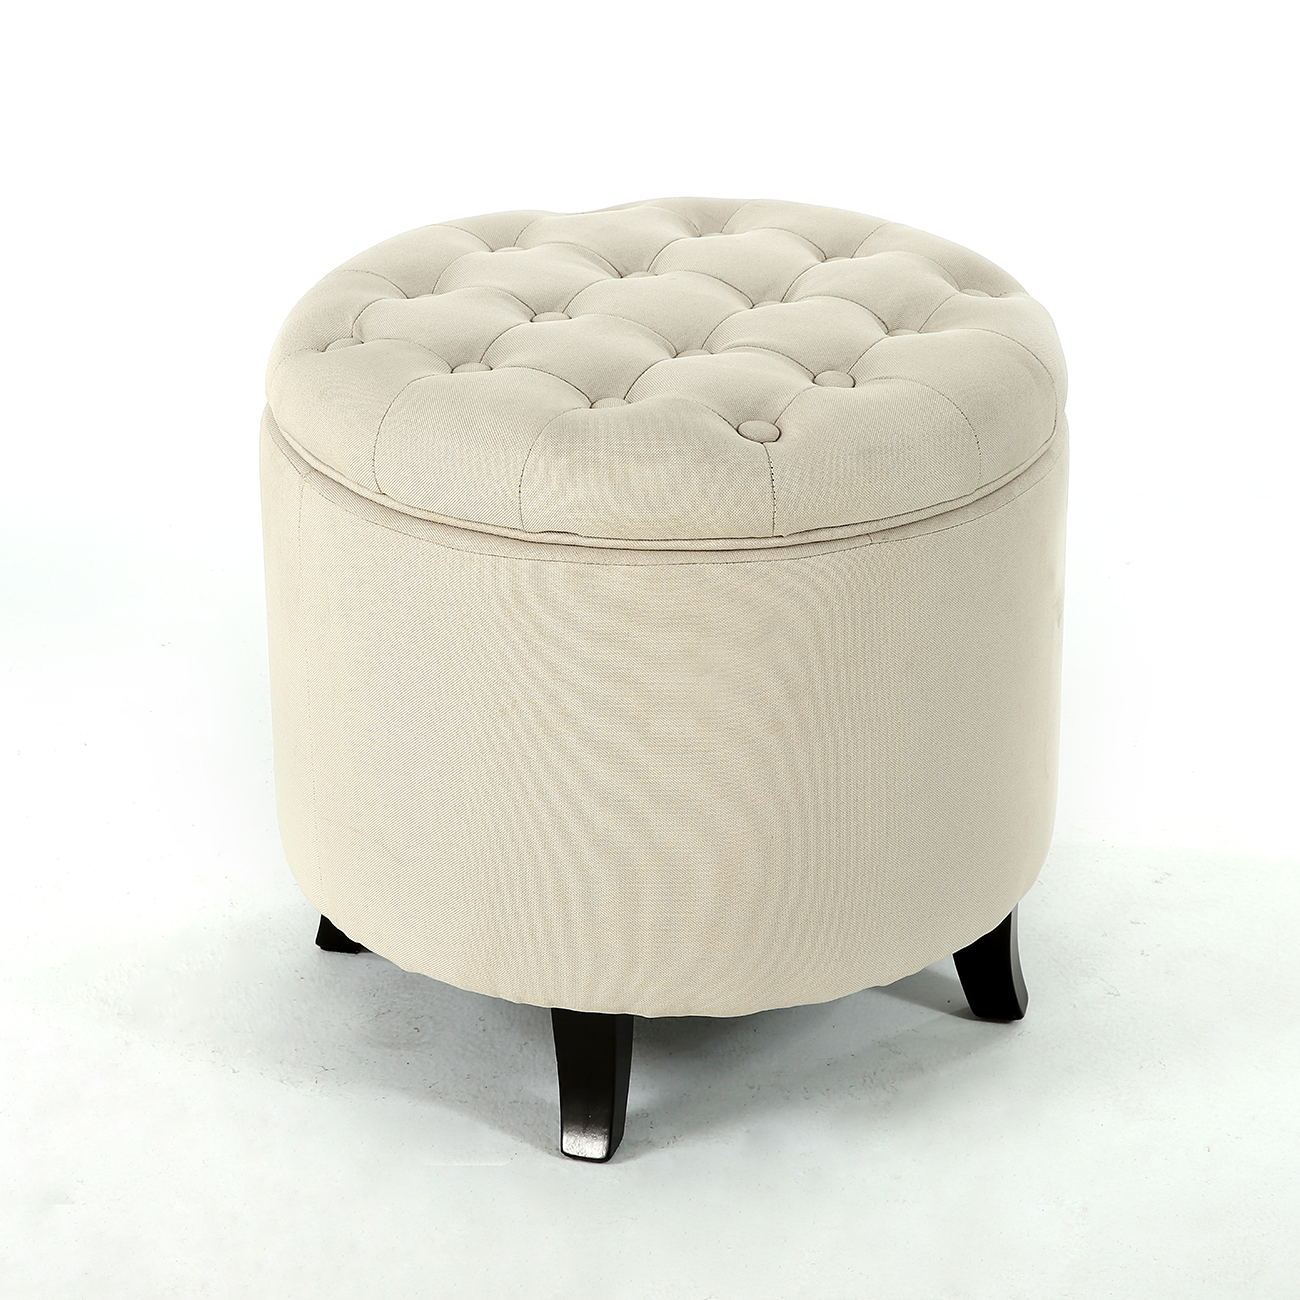 Elegant Fabric Tufted Button Ottoman Round Footstool